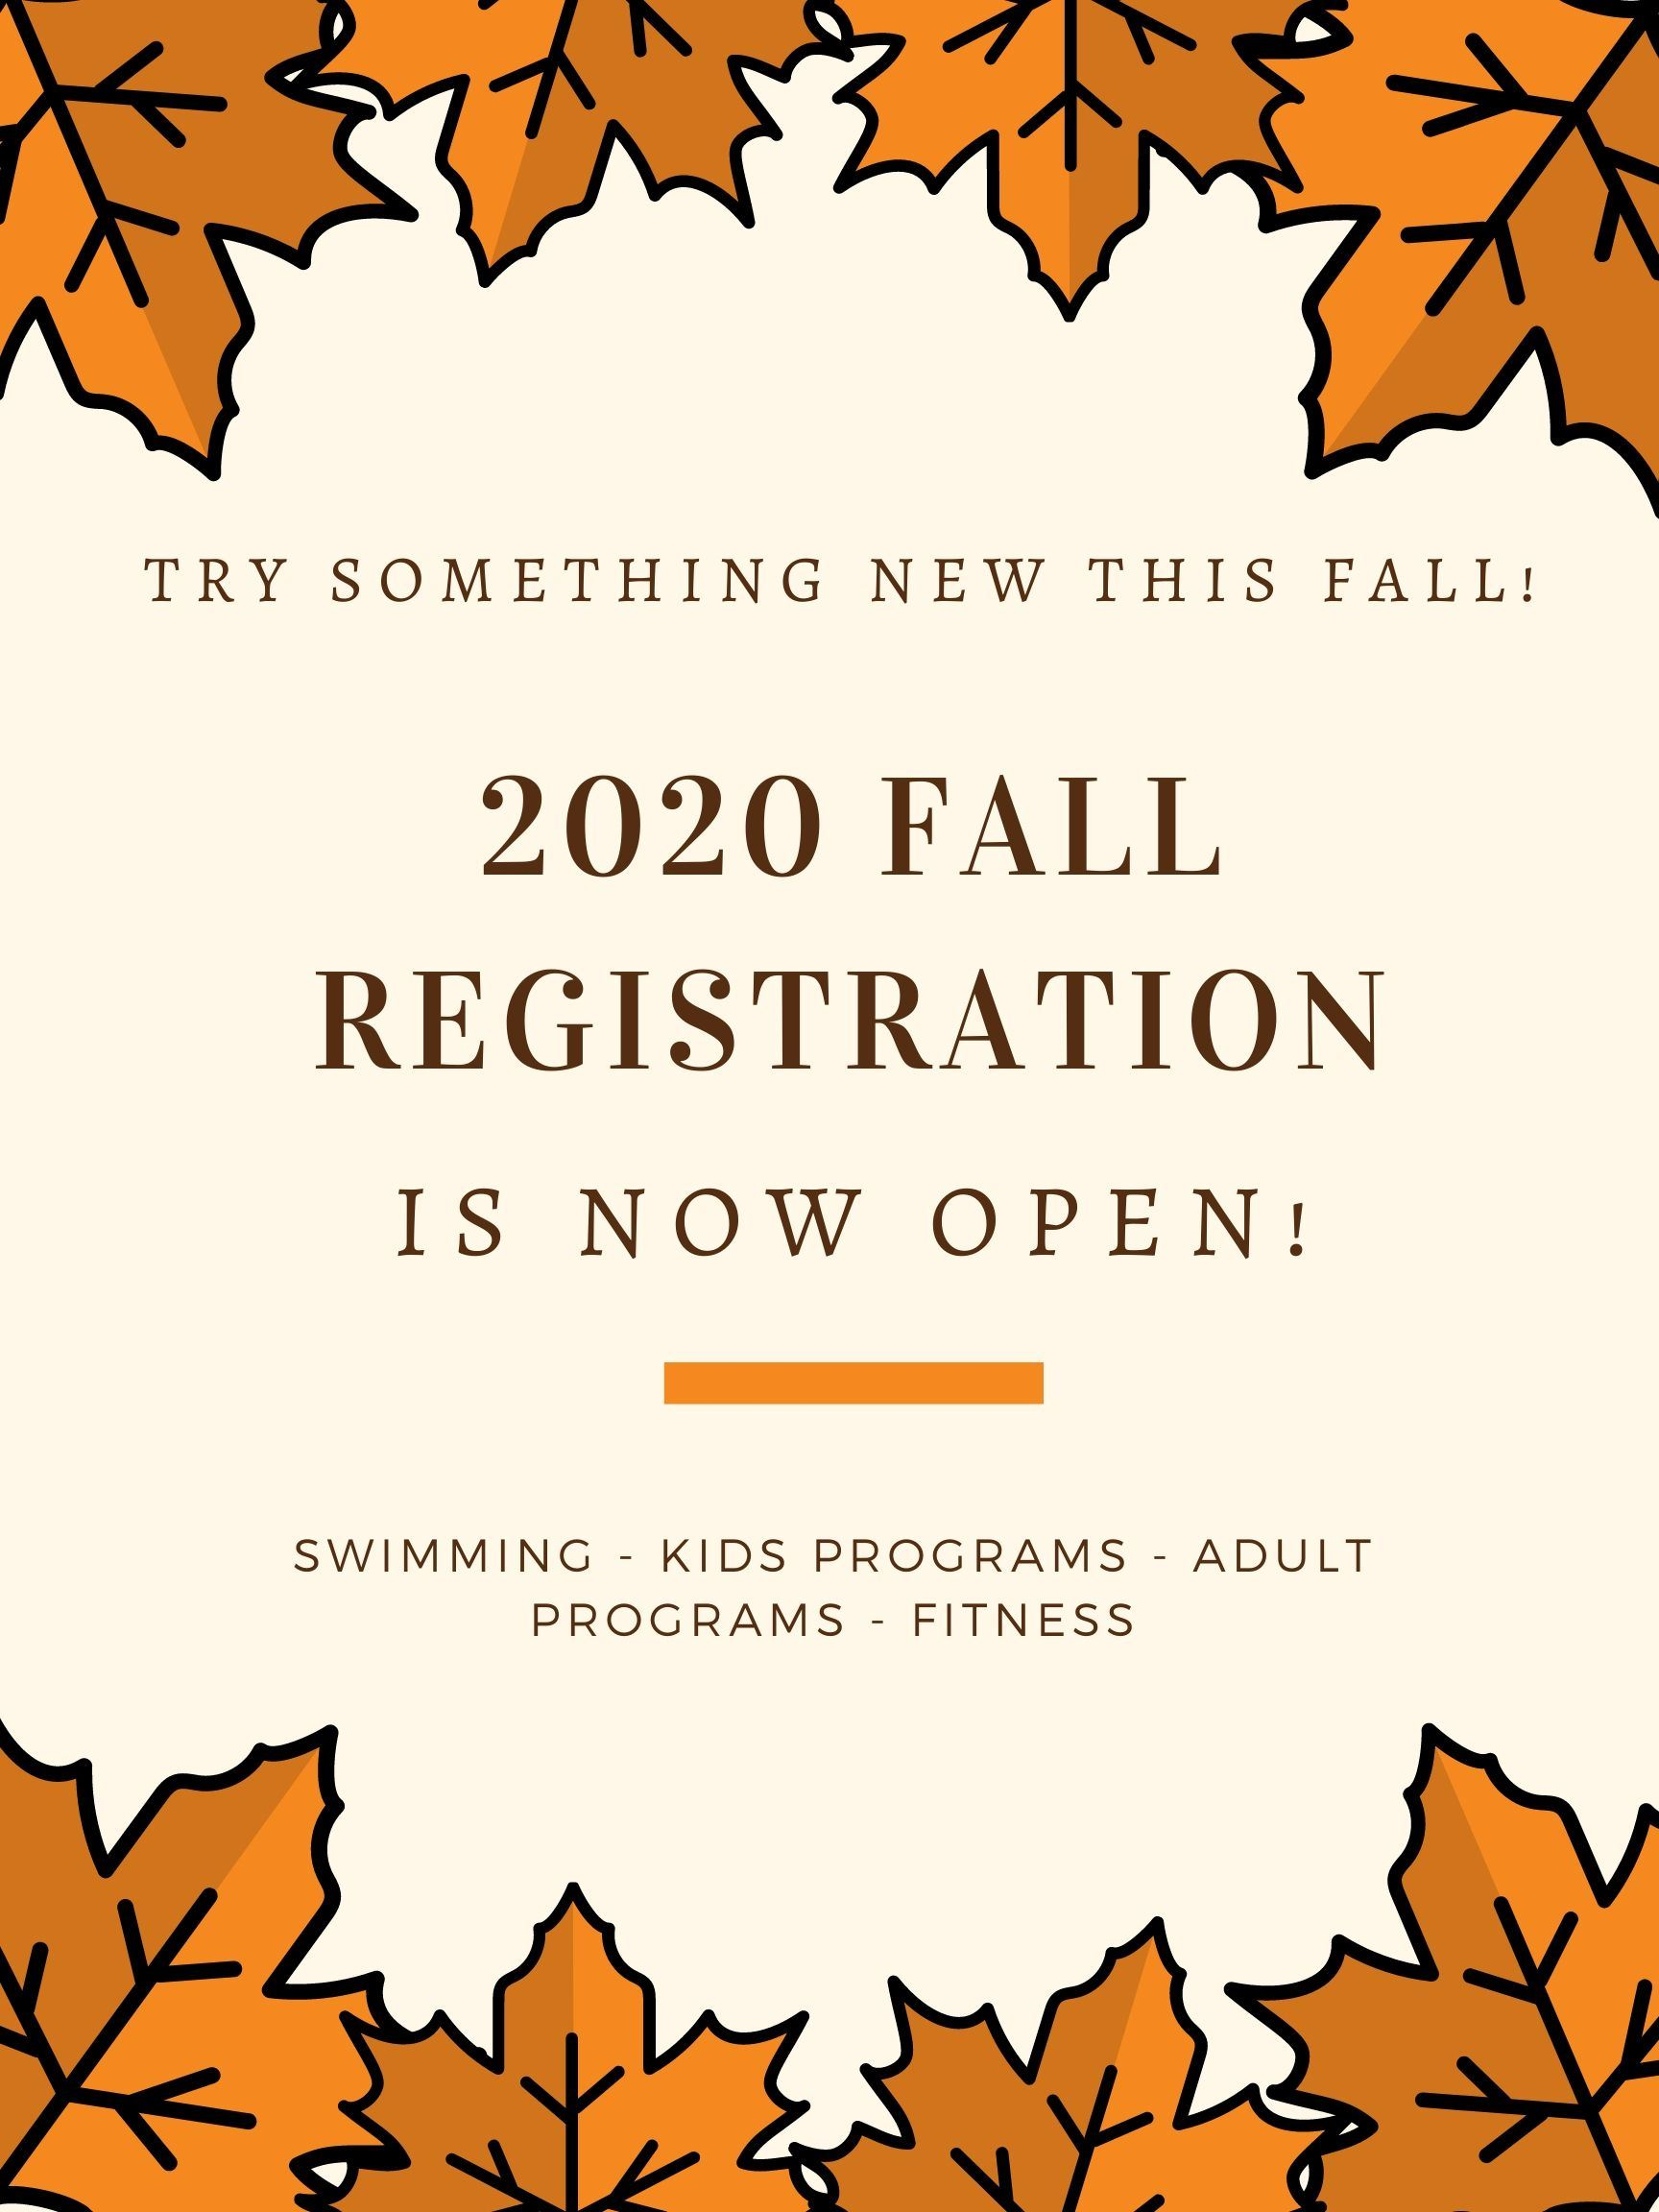 2020 Fall Registration - August 17th